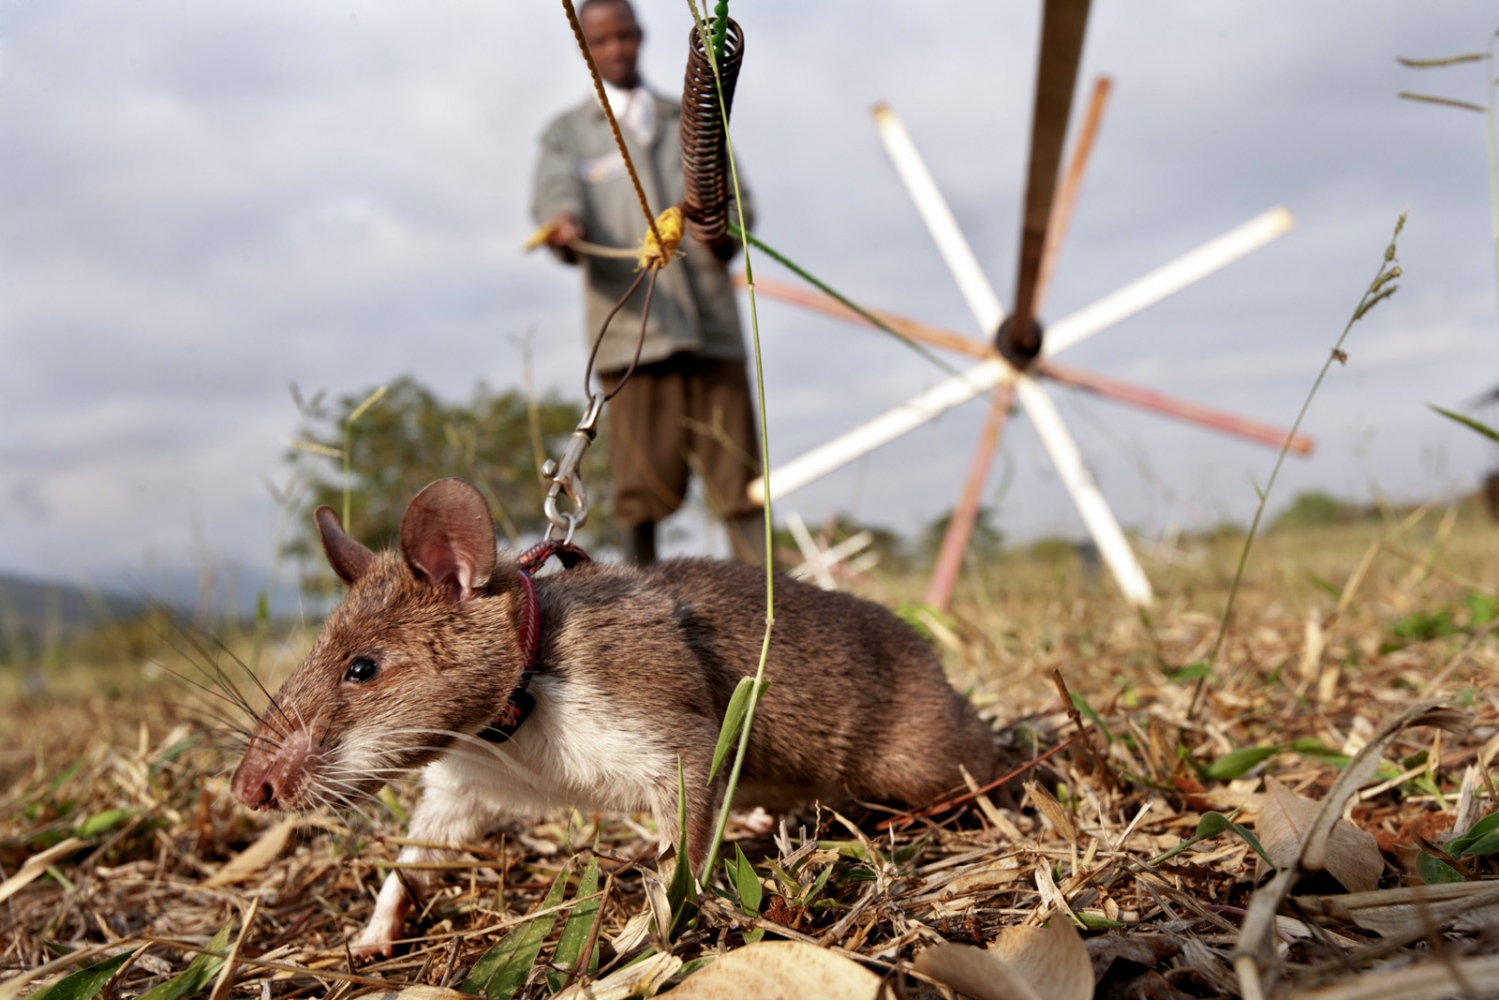 Art and Documentary Photography - Loading Hero_Rats_-_Ratas_Heroes__-_david_rengel-04.jpg